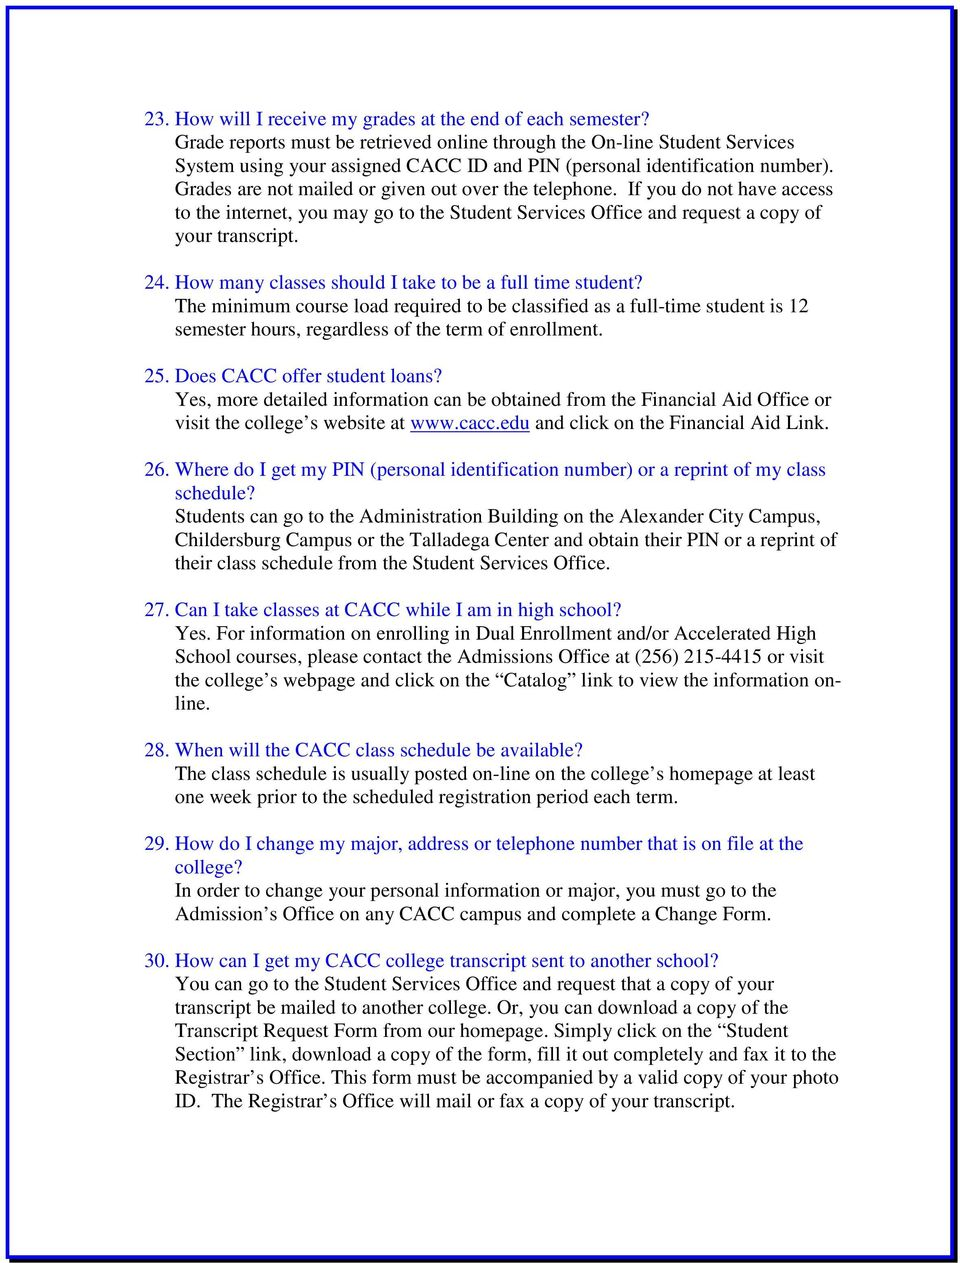 Central Alabama Community College Frequently Asked Questions Pdf